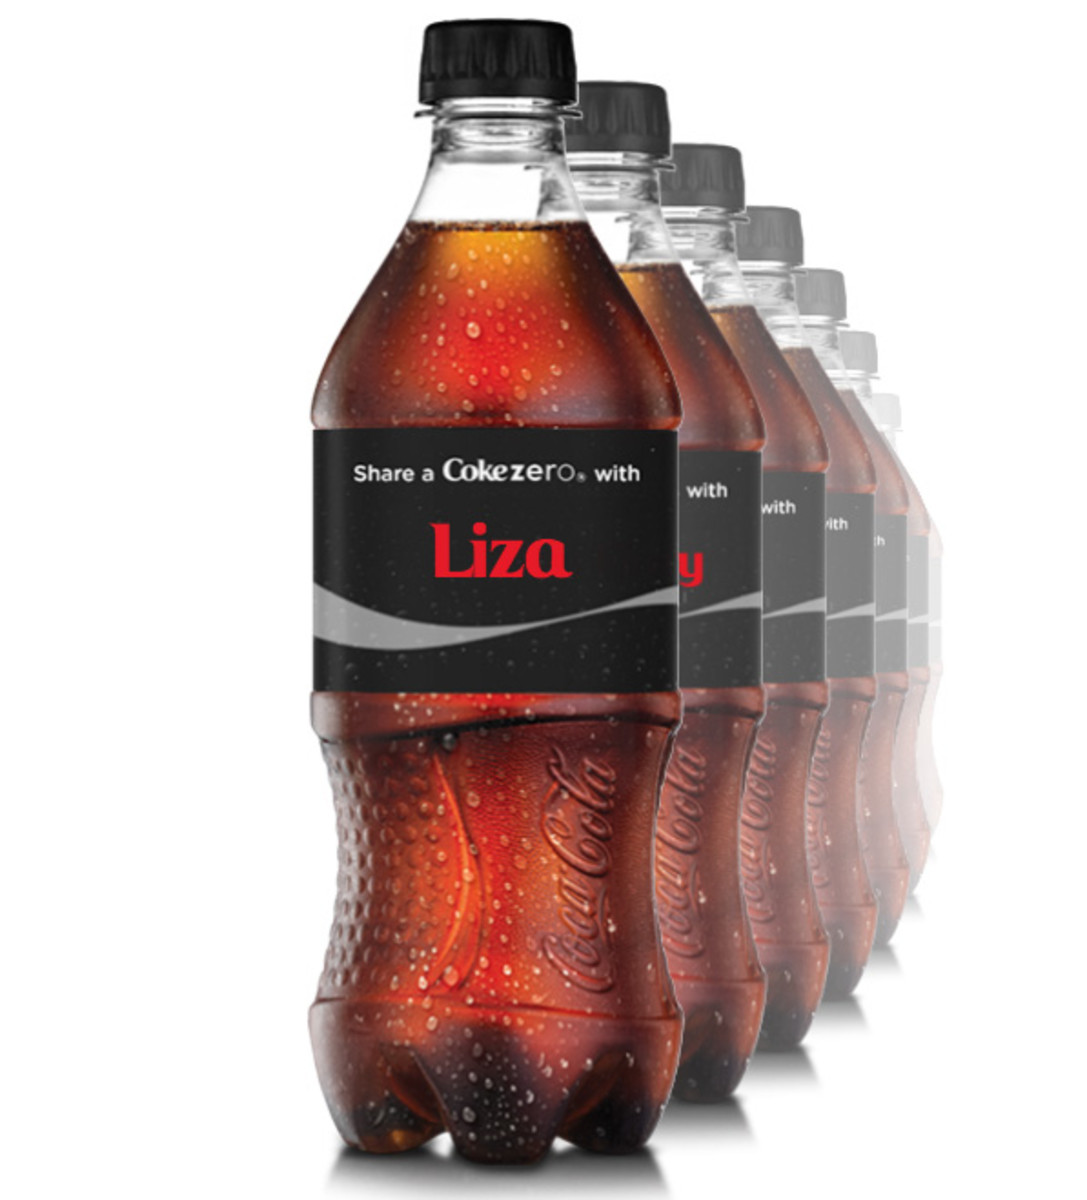 personalized coke labels_share a coke with Liza